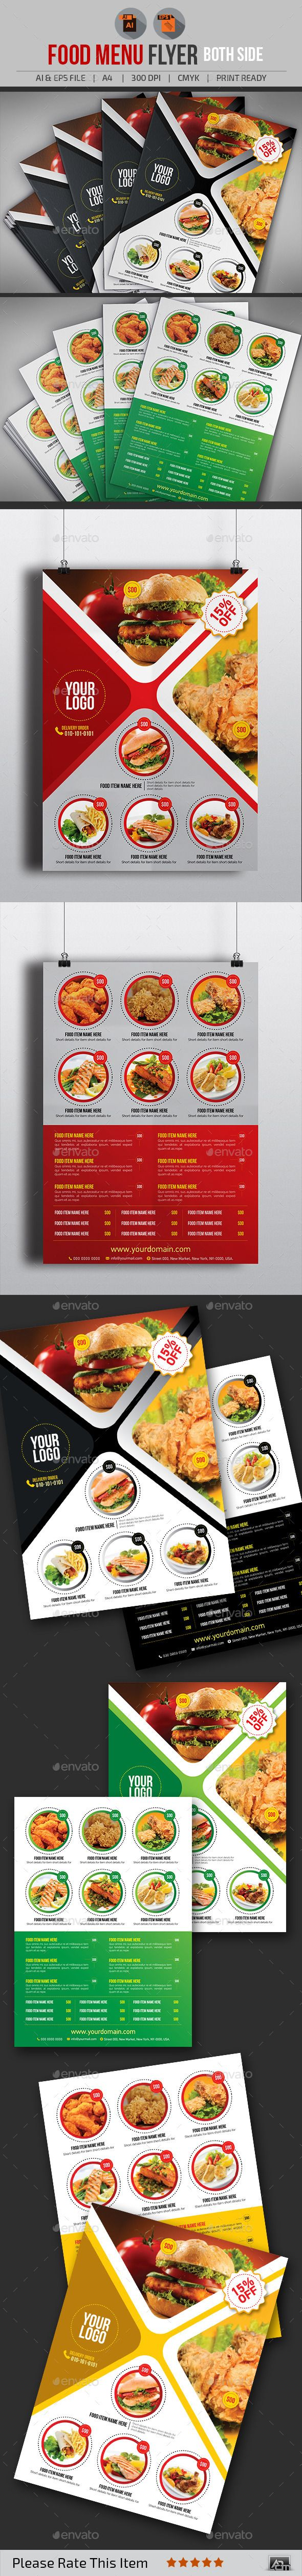 Food Menu Flyer Template #design Download: http://graphicriver.net/item/food-menu-flyer-v2/11280247?ref=ksioks